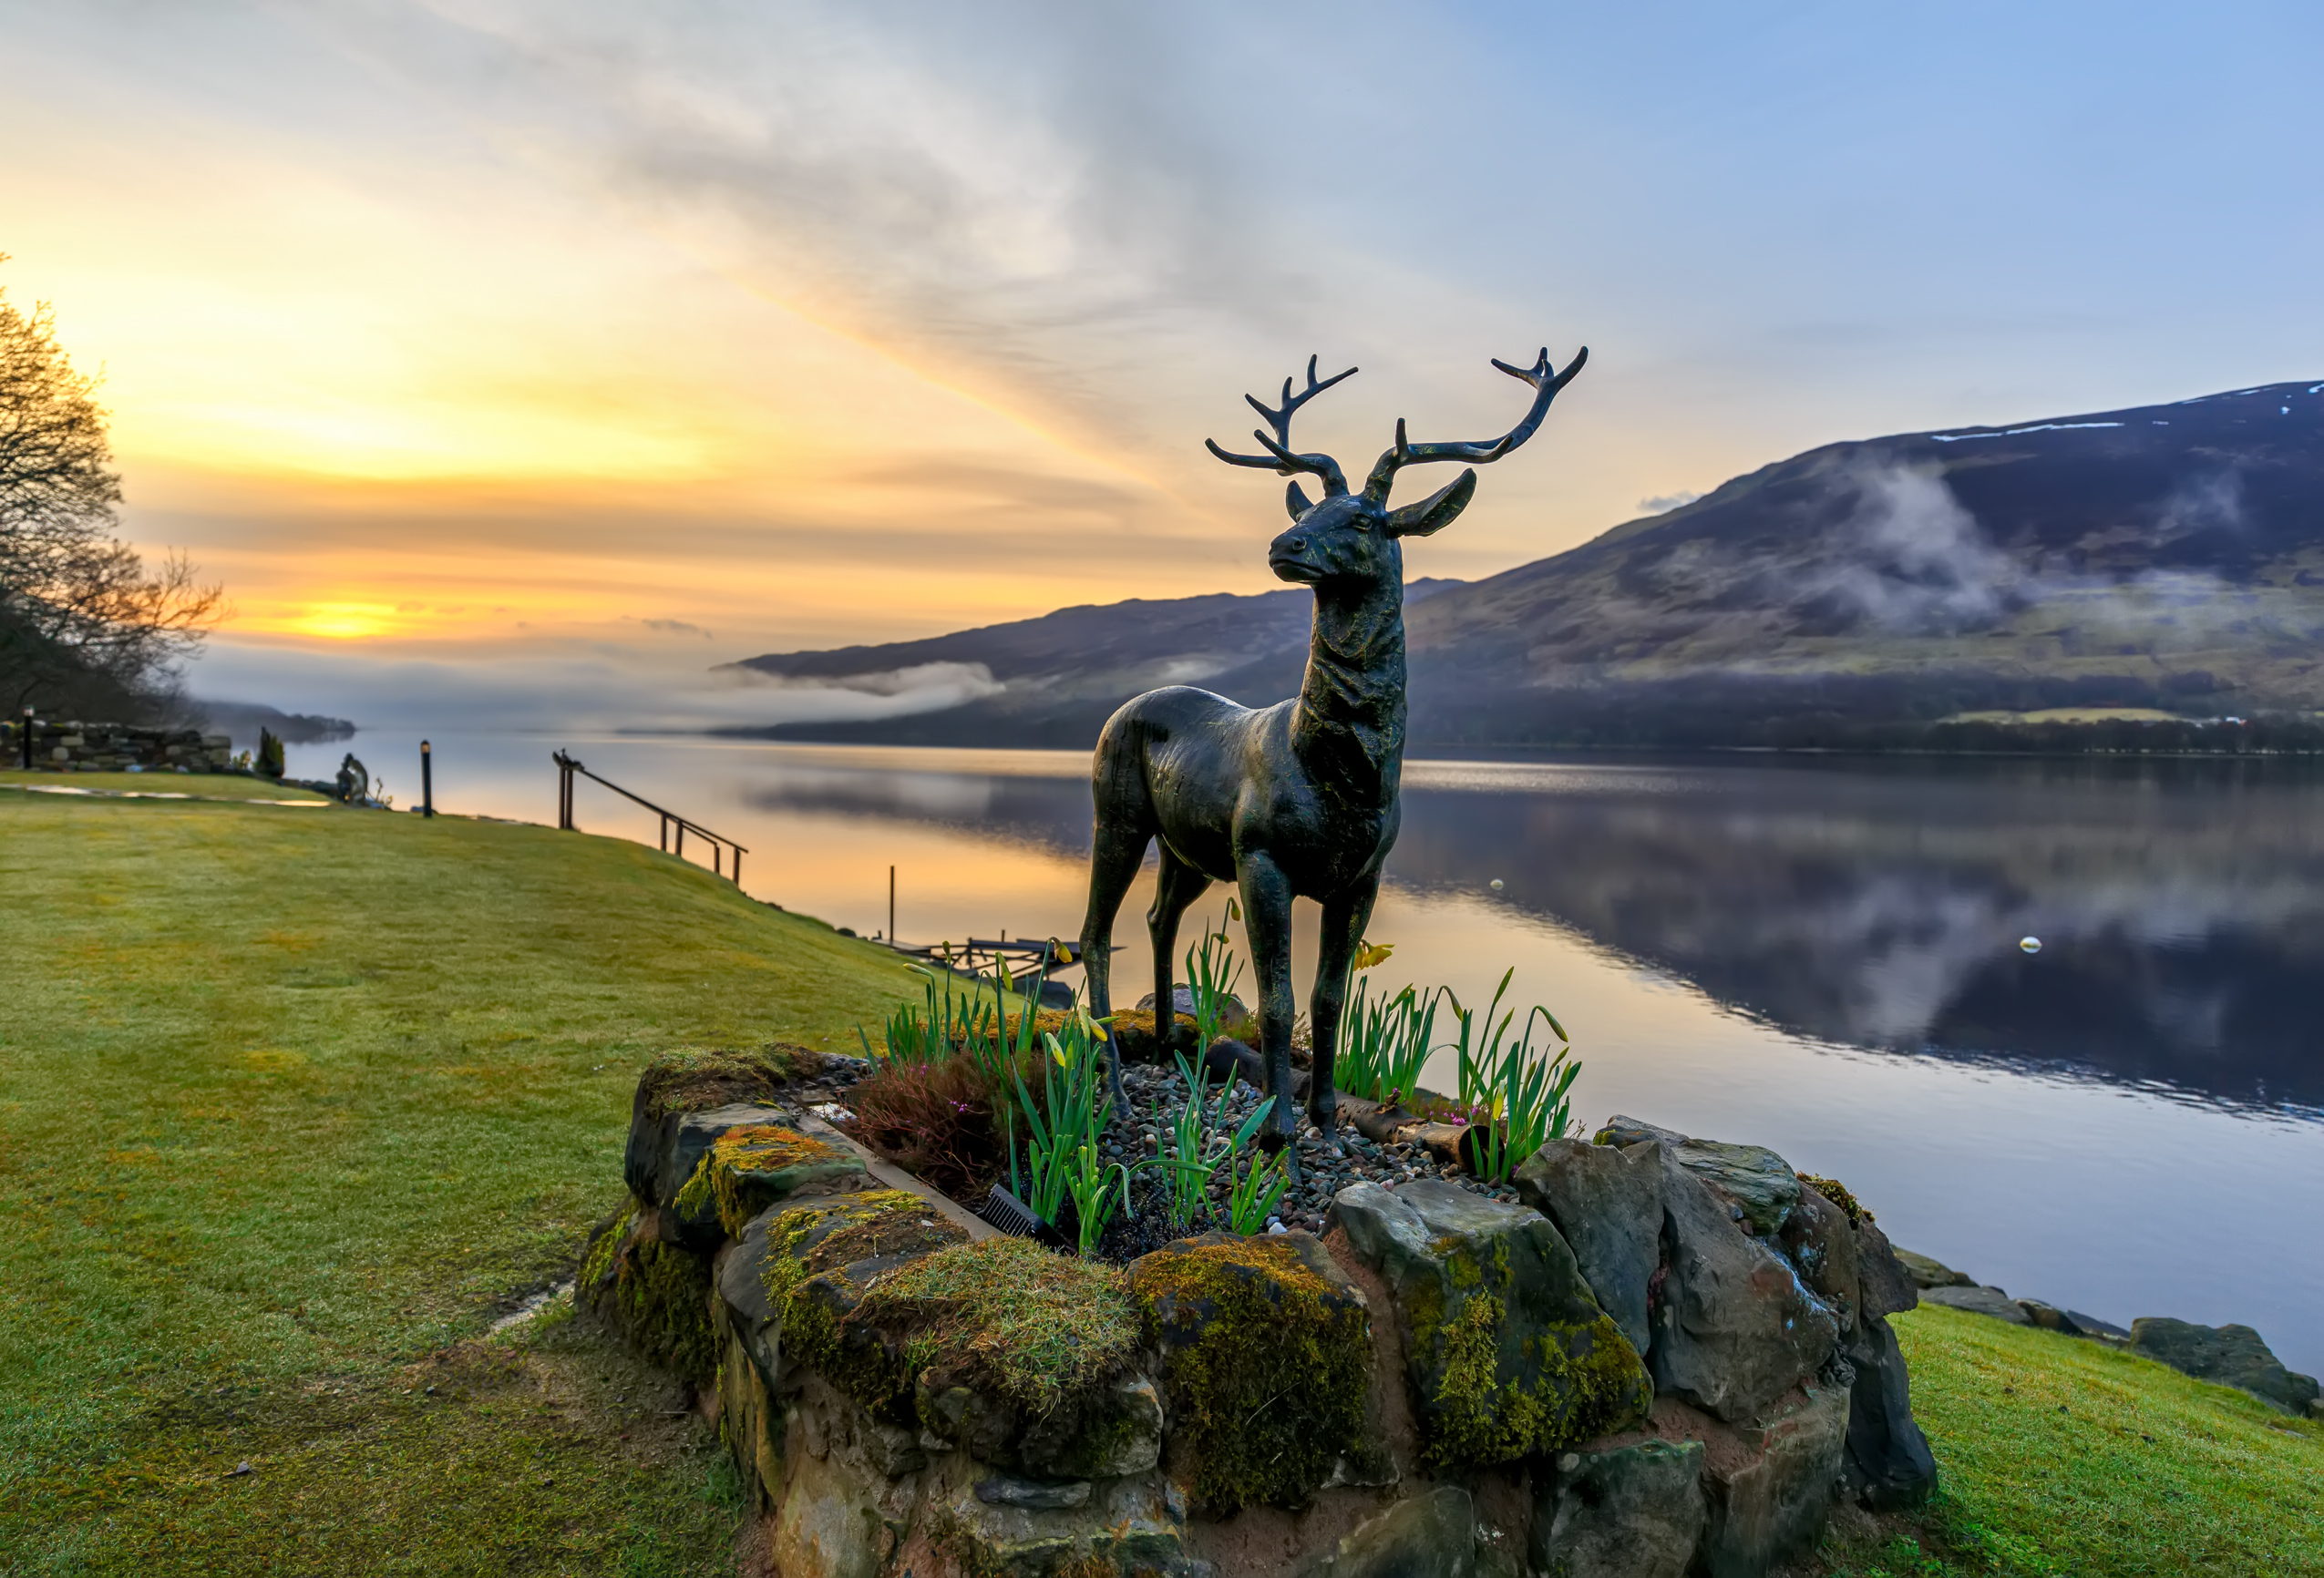 New Audio Tour Brings Art and Architecture to Life in Loch Earn Region